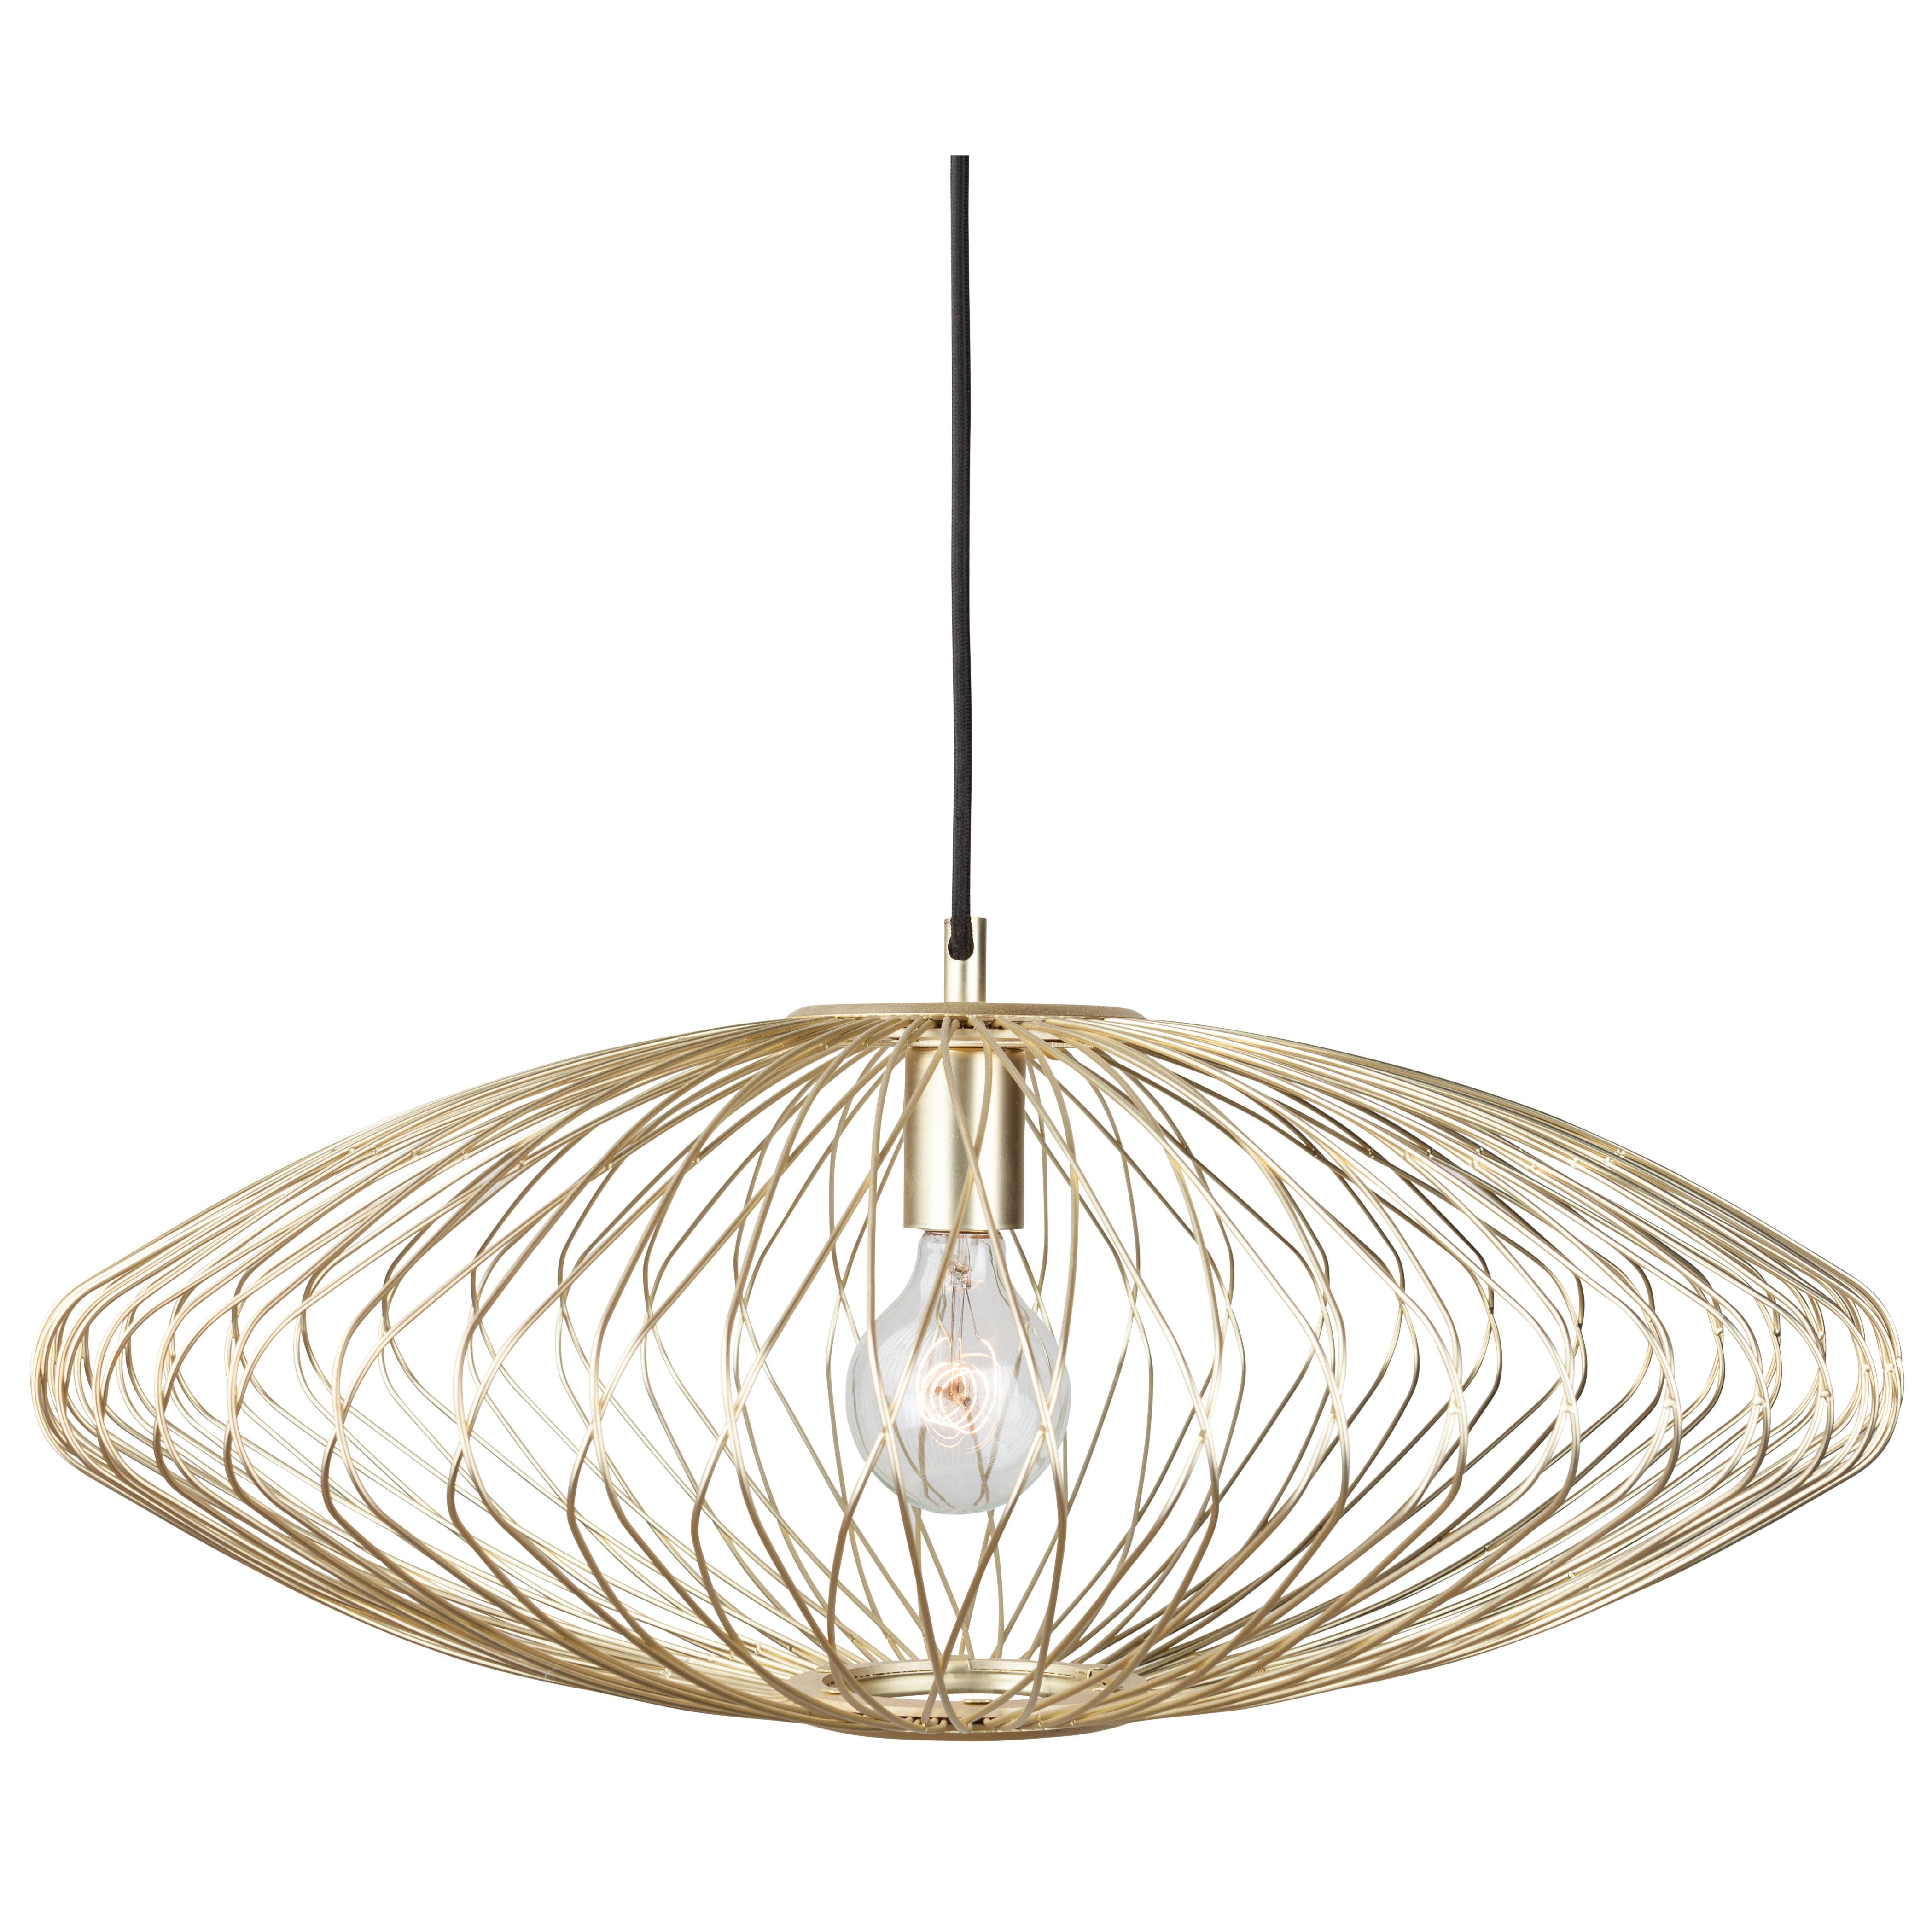 Shop wayfair for pendants to match every style and budget enjoy